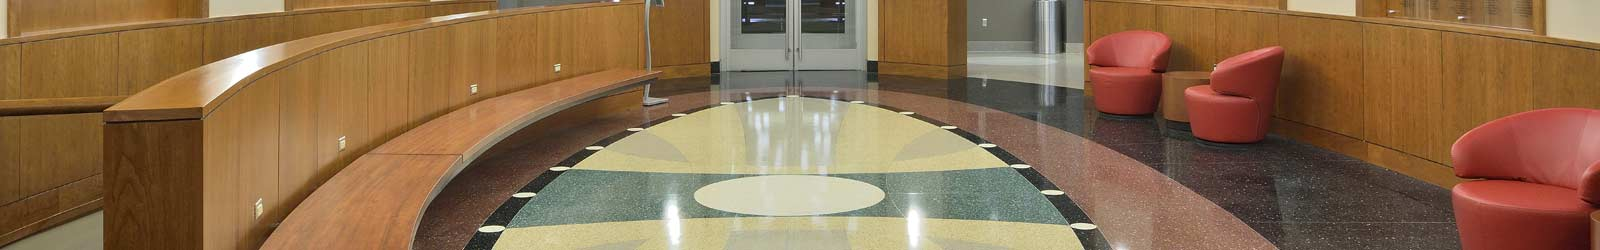 header_tn-tile_cscc_oval-tile-floor.jpg